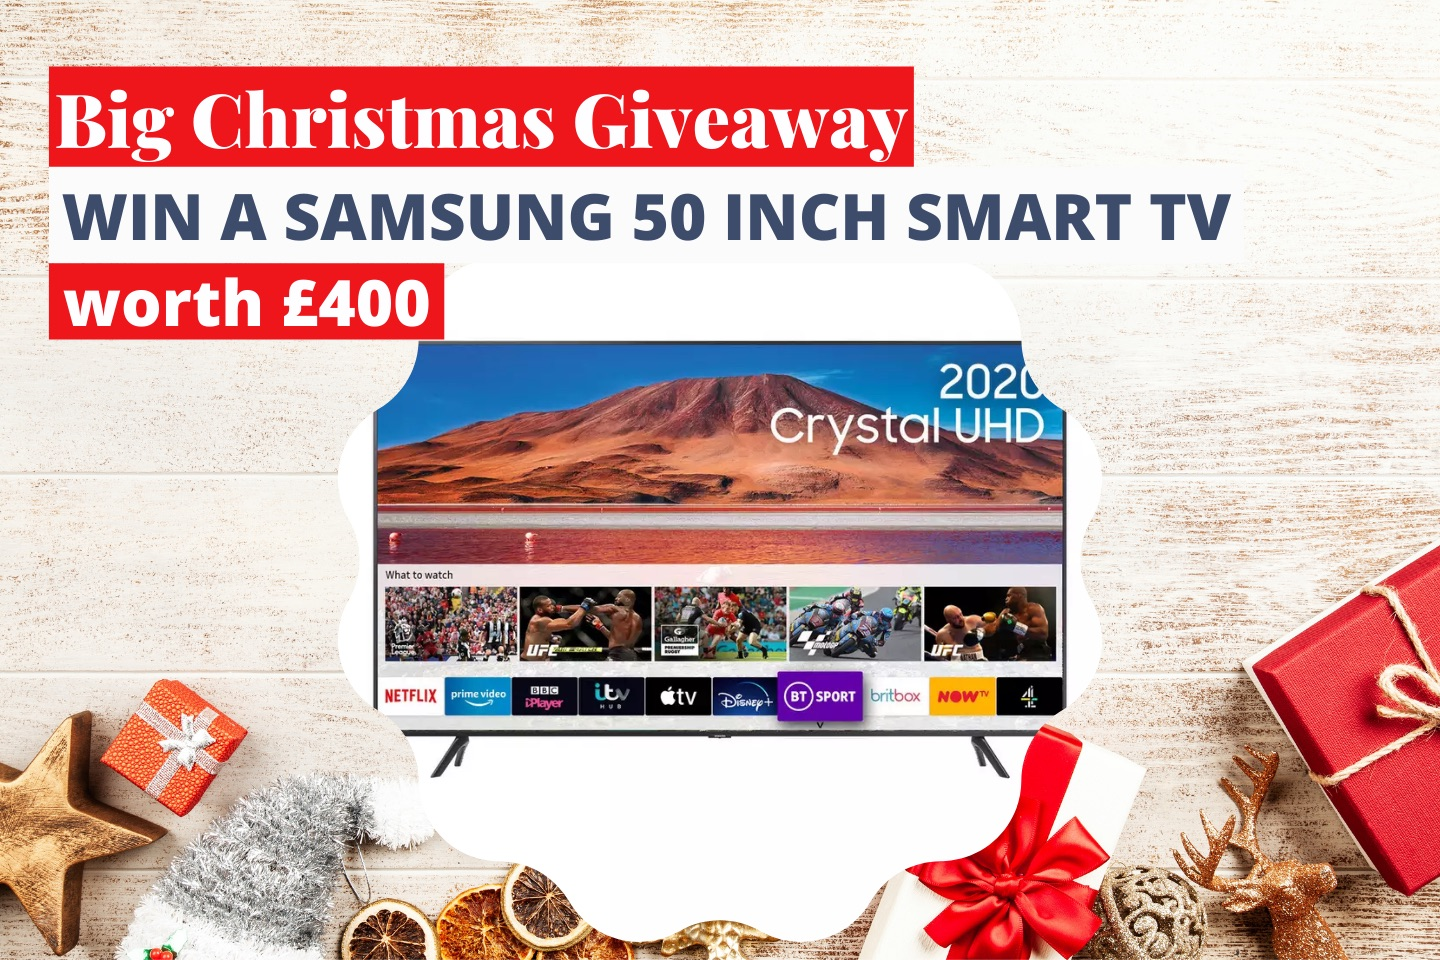 Big Christmas Giveaway | Win a